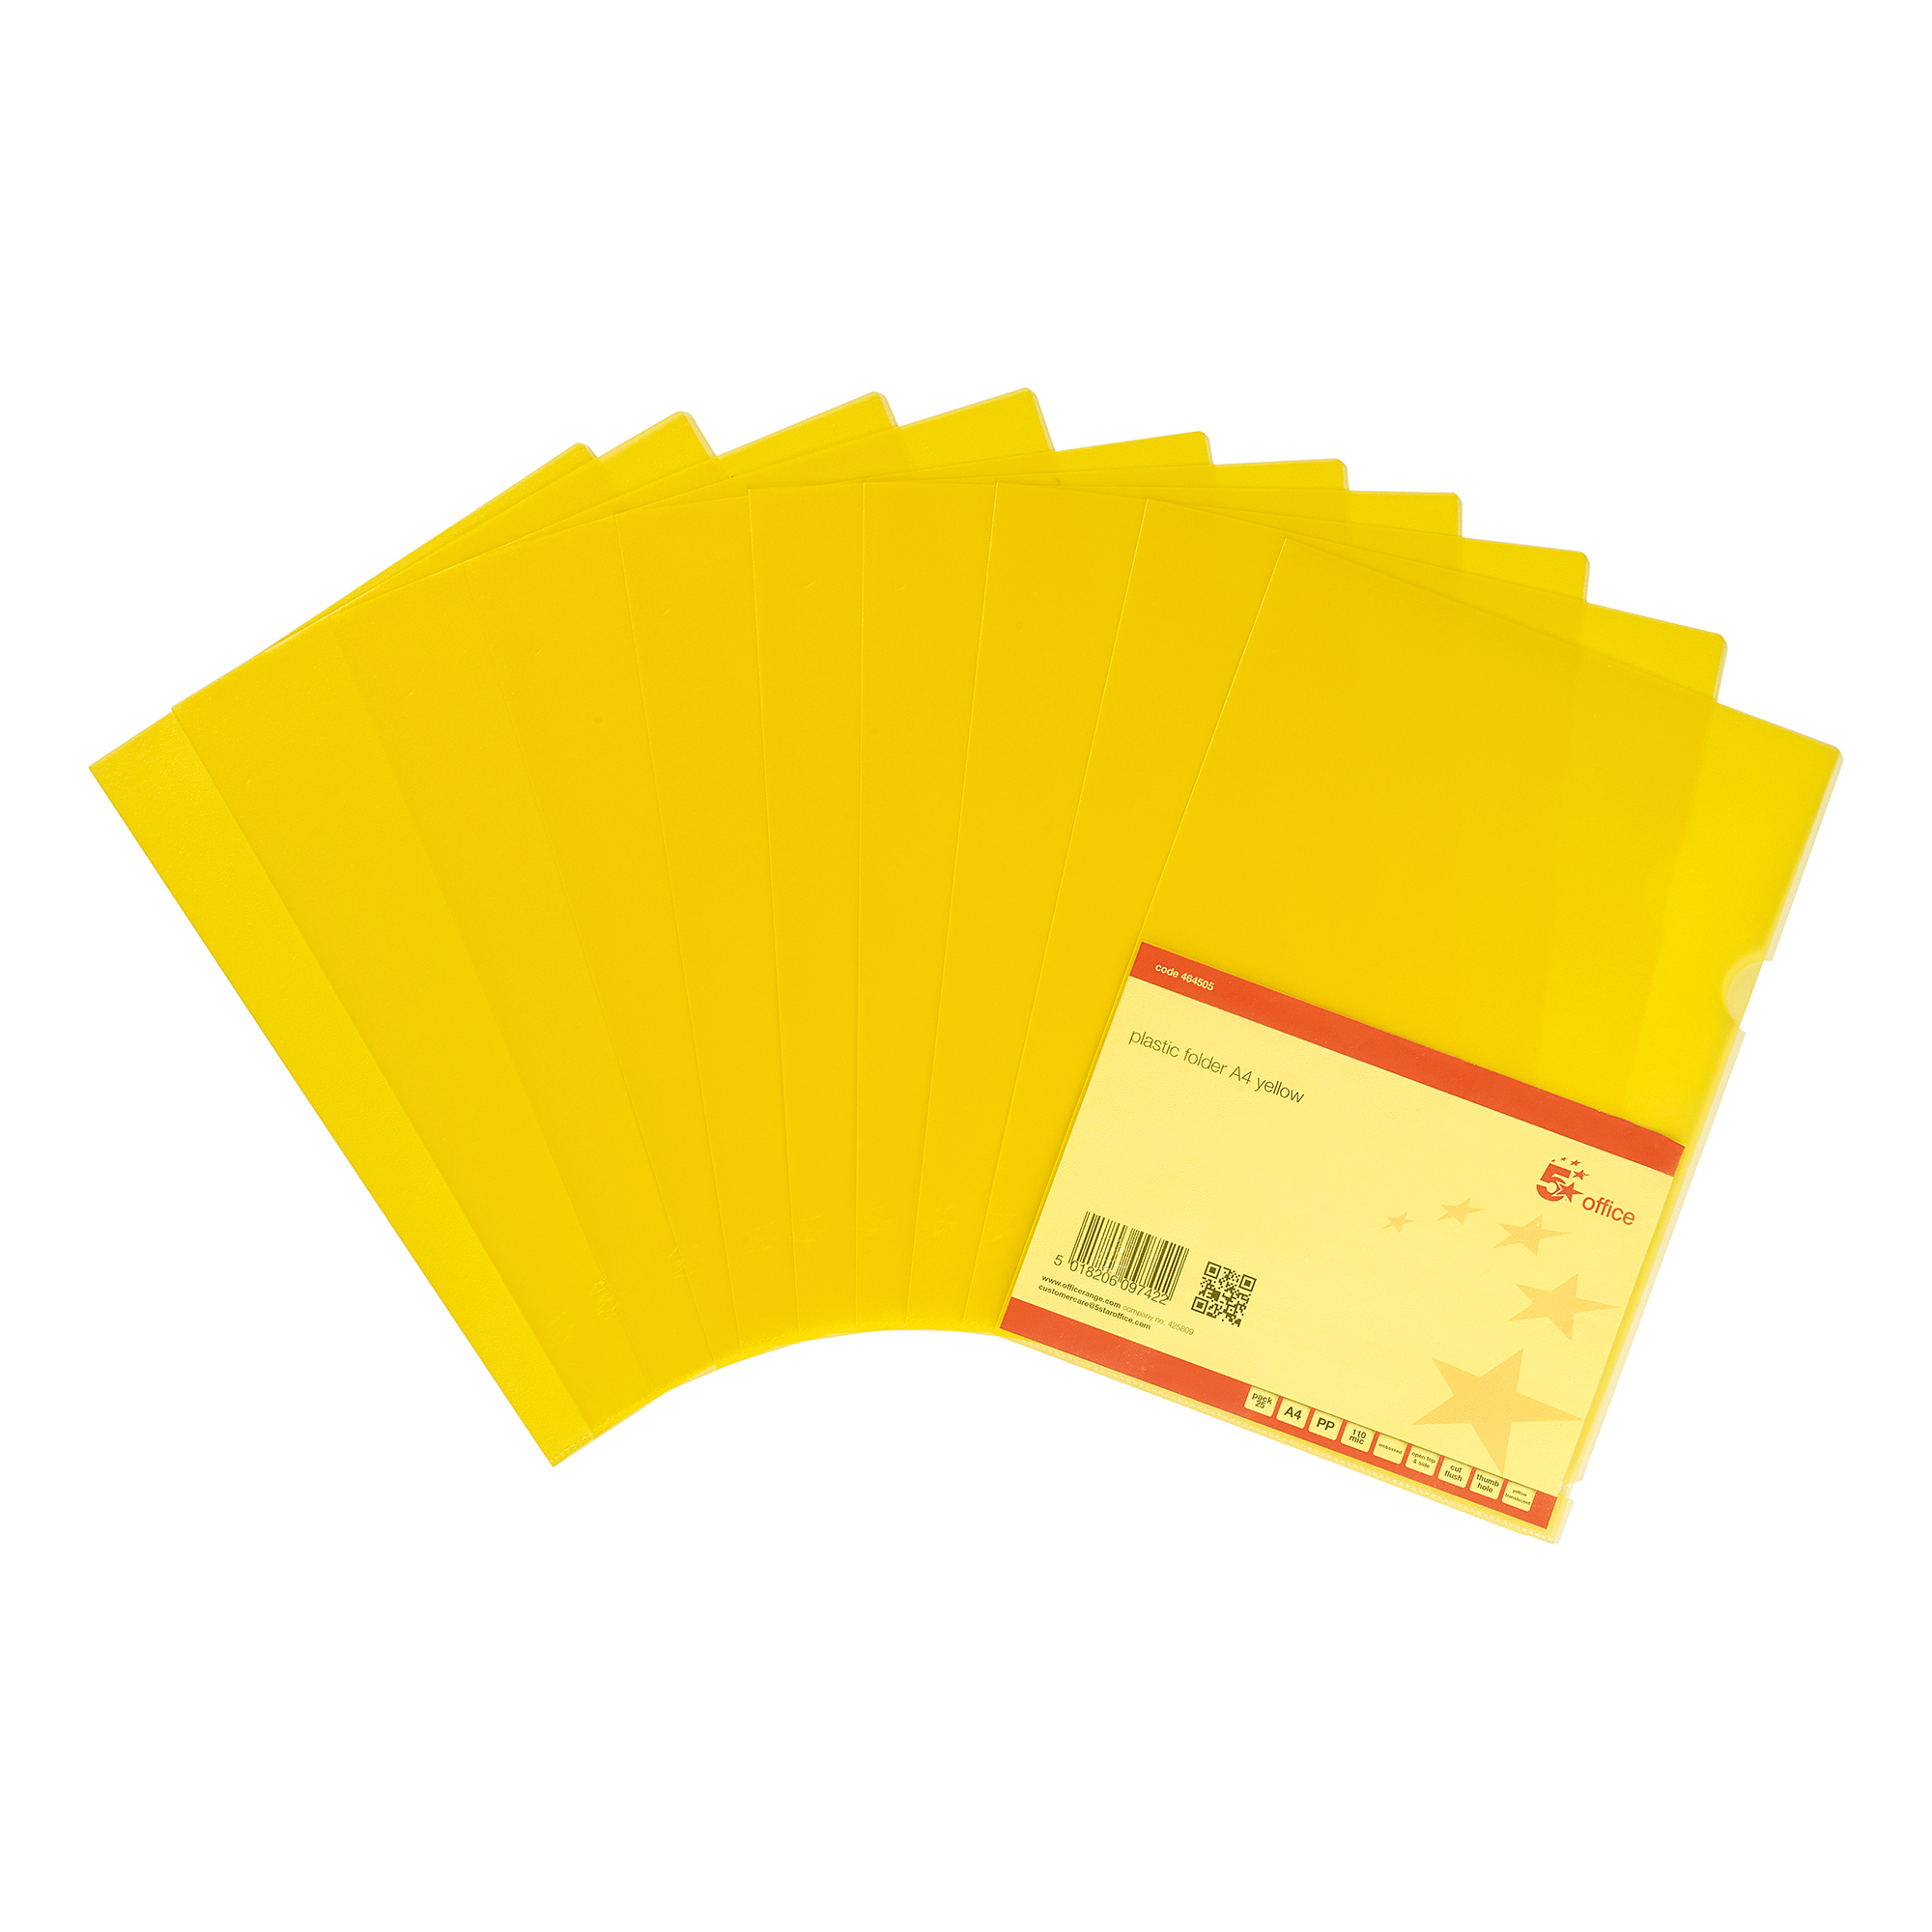 Clip Files 5 Star Office Folder Embossed Cut Flush Polypropylene Copy-safe Translucent 110 Micron A4 Yellow Pack25